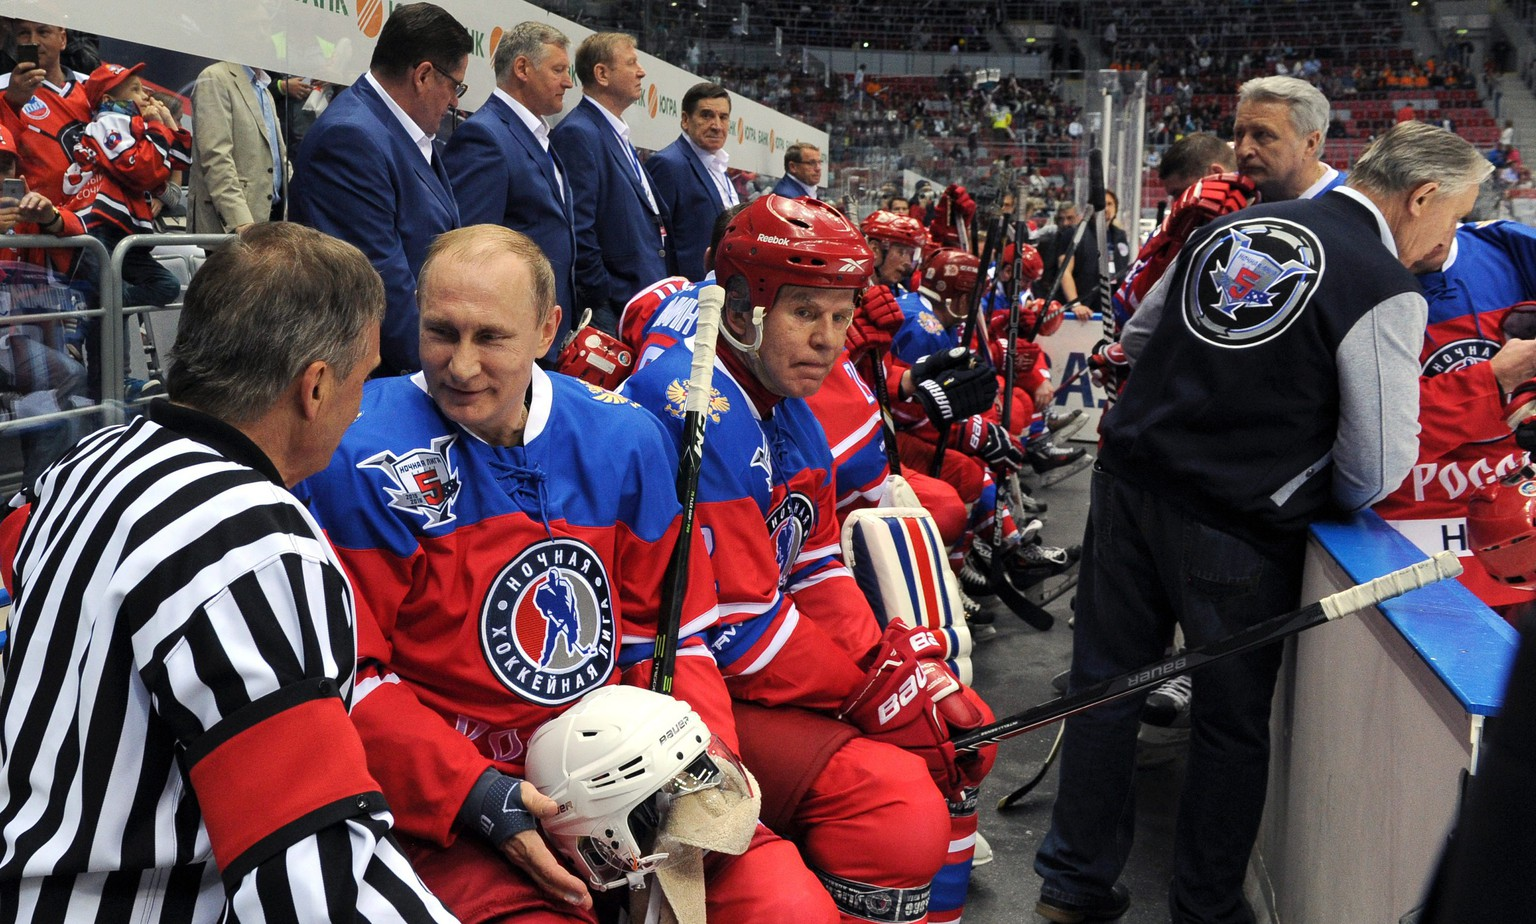 epa05298347  International Ice Hockey Federation (IIHF) President Rene Fasel (L) speaks with Russian President Vladimir Putin (2-L) as Night Hockey League Board Chairman Vyacheslav Fetisov (3-L) looks on during a gala match of the Night Hockey League tournament at the Bolshoi Ice Arena in the Black Sea resort of Sochi, Russia, 10 May 2016.  EPA/MICHAEL KLIMENTYEV / SPUTNIK / KREMLIN POOL MANDATORY CREDIT